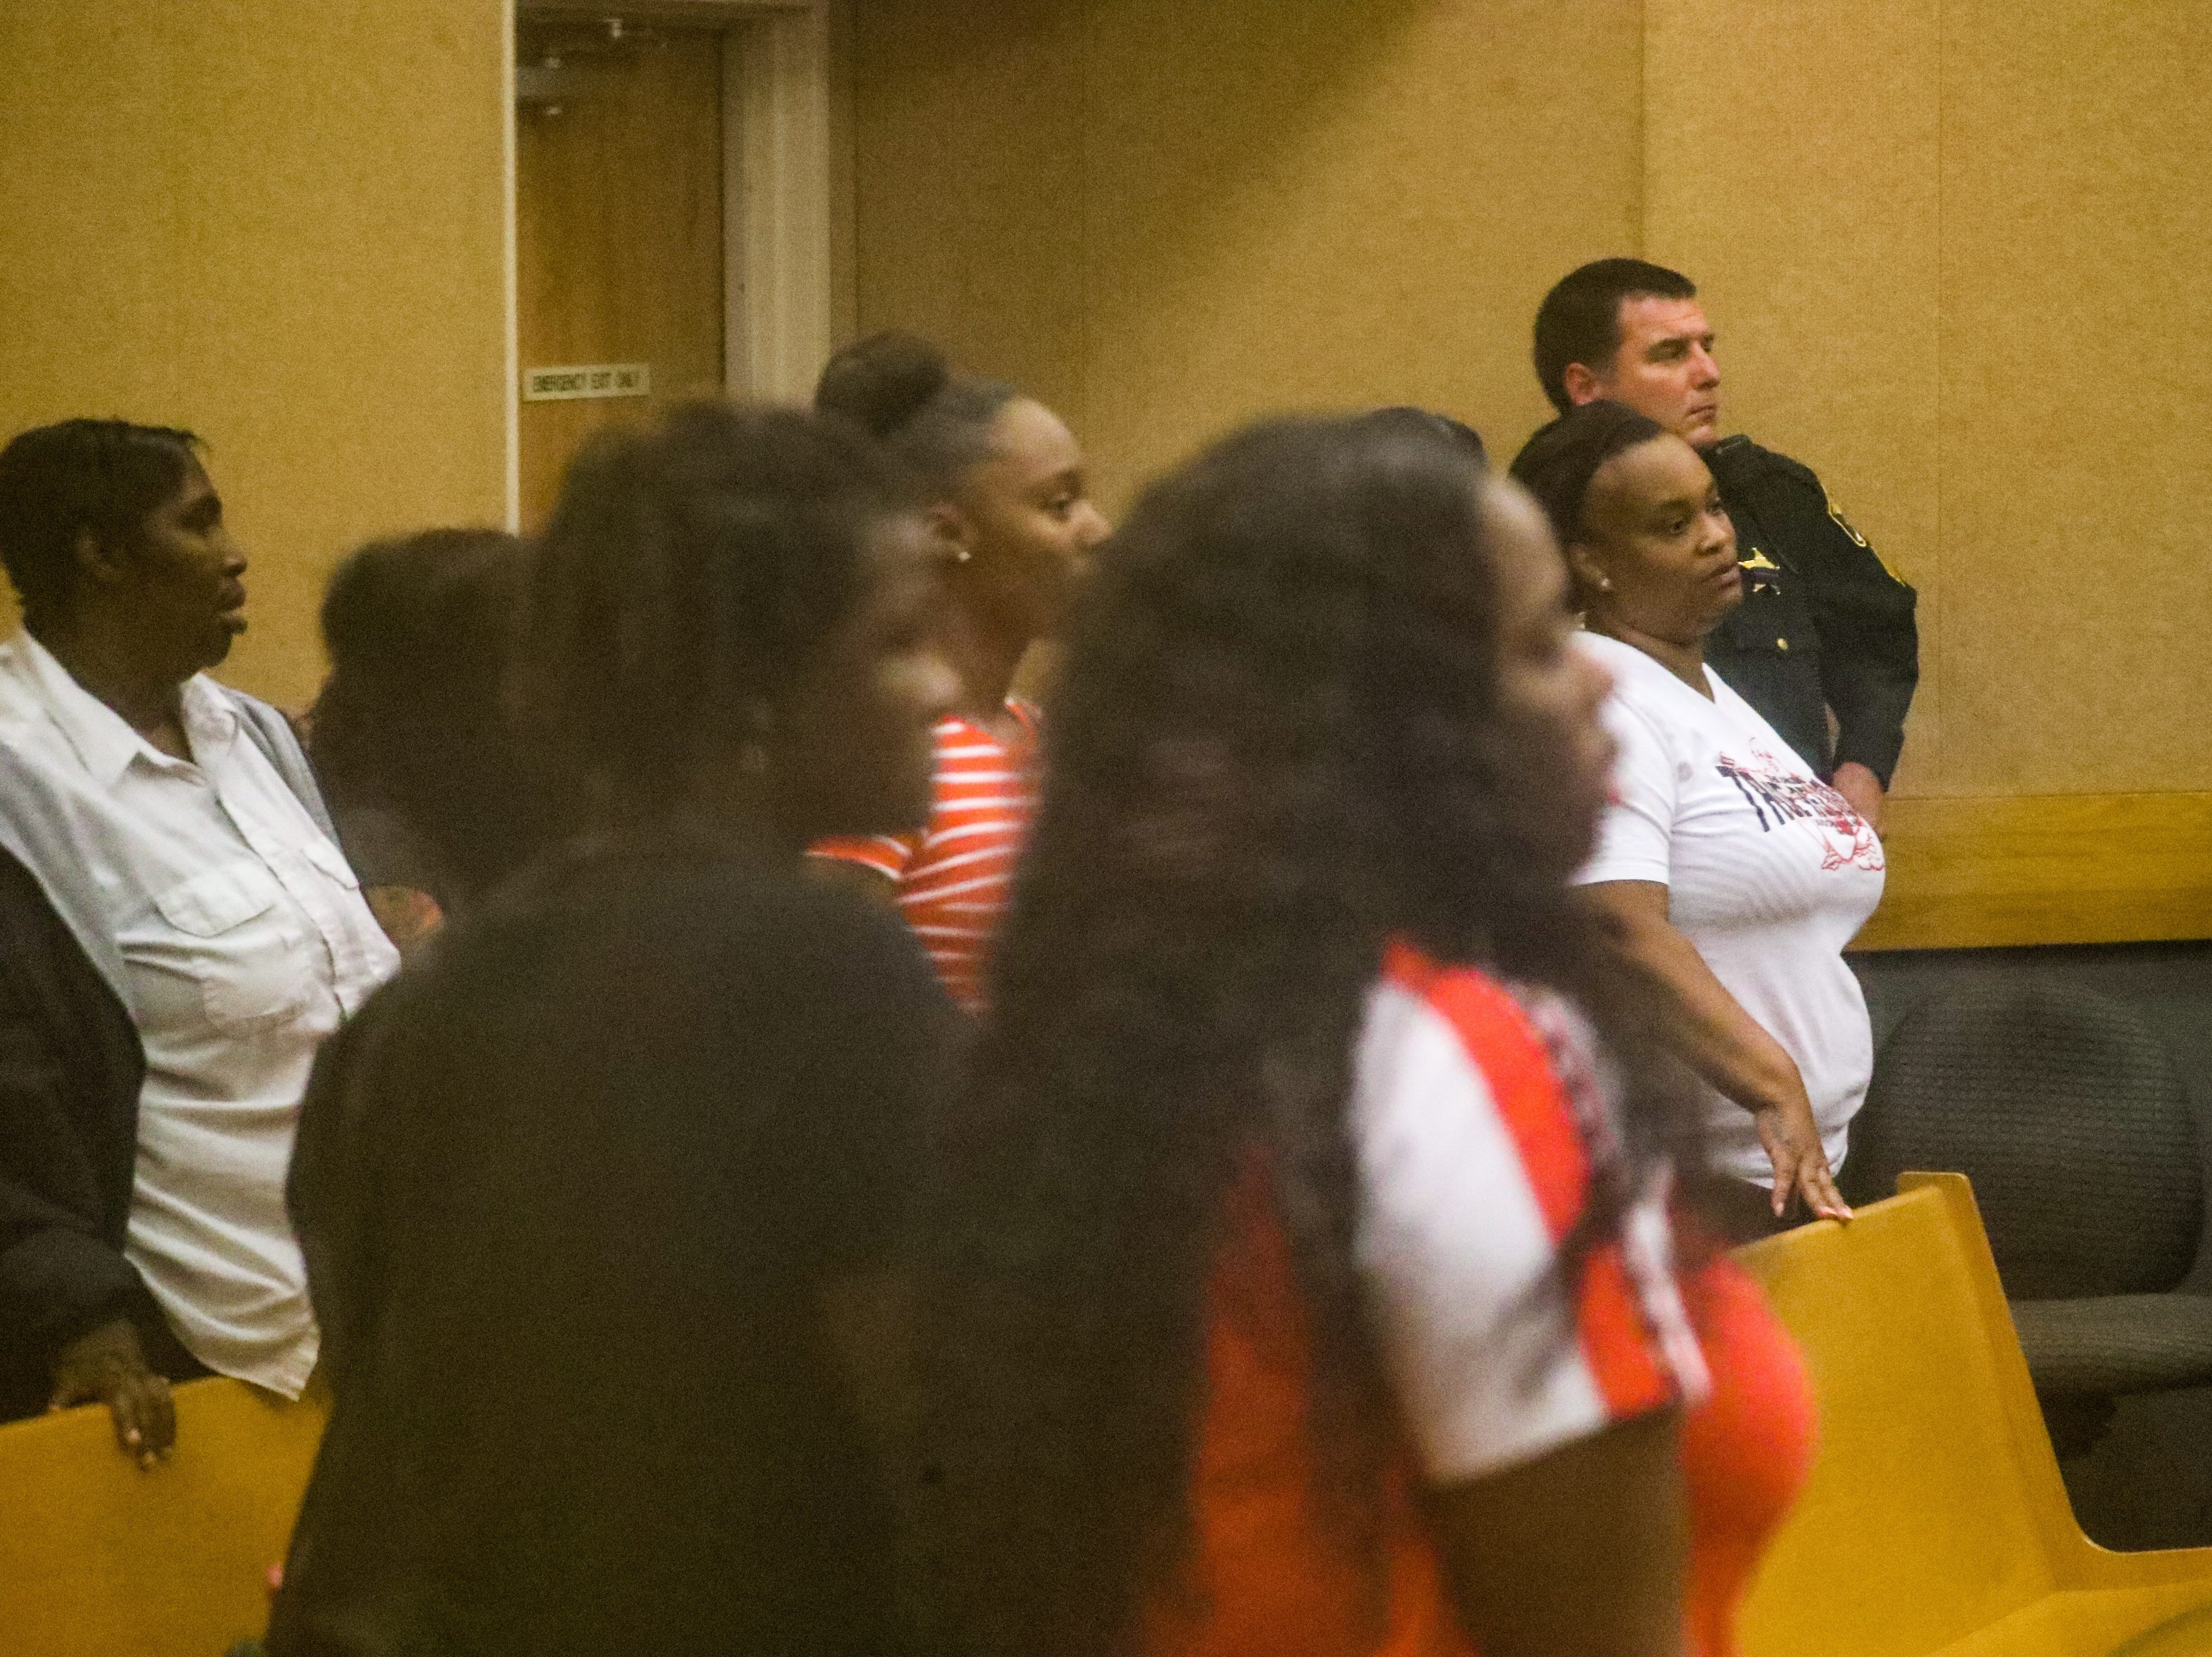 Family and friends of four men accused of being gang members watch trial proceedings at a Lee County courtroom late Friday night.